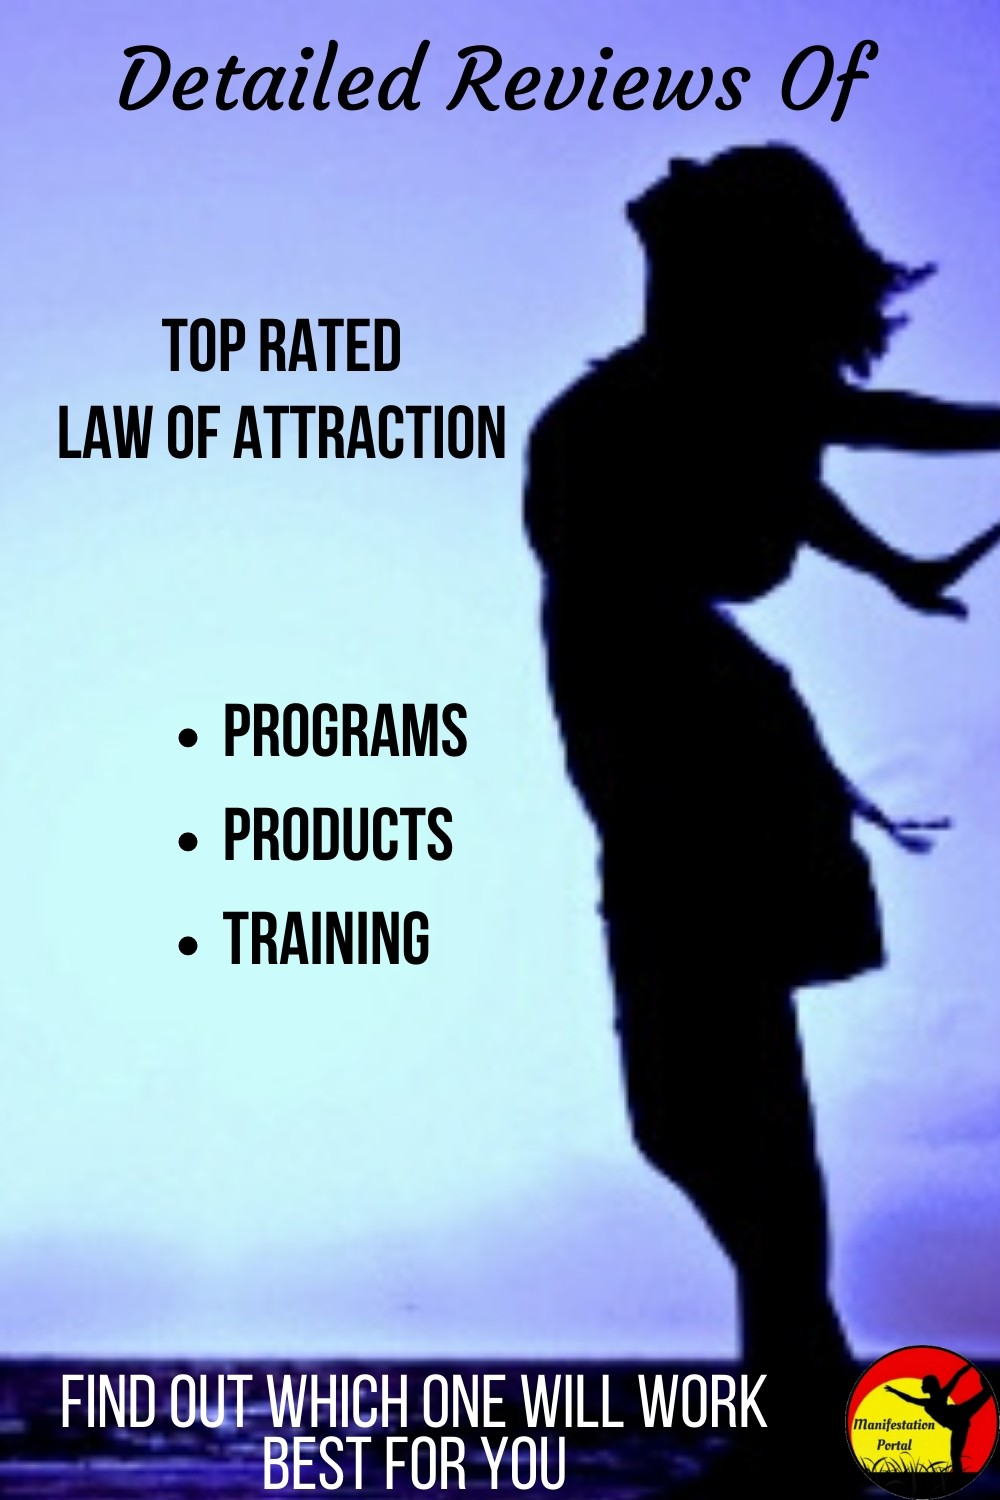 The Law Of Atraction Programs, Products And Training